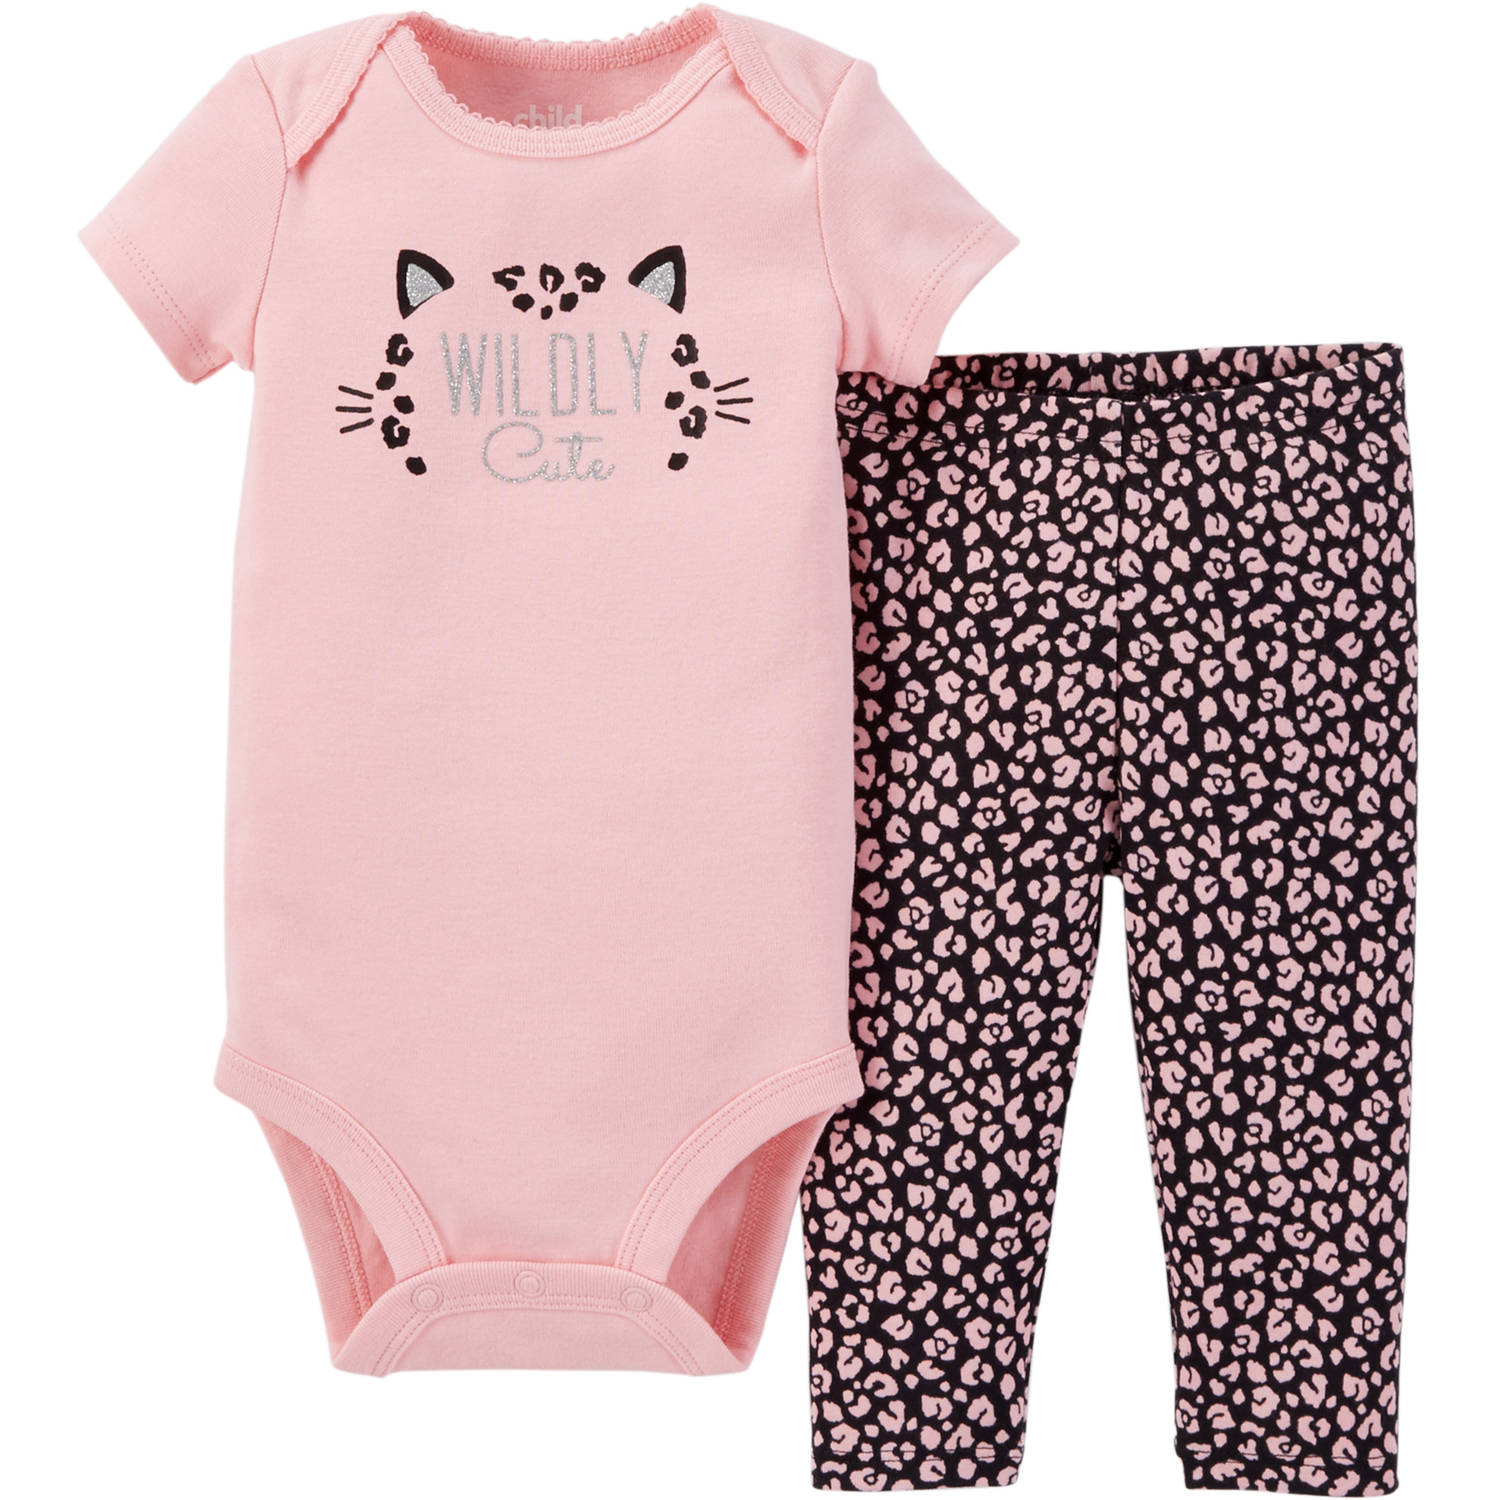 Child of Mine made by Carter's Newborn Baby Girls' Bodysuit and Pant Outfit Set 2 Pieces